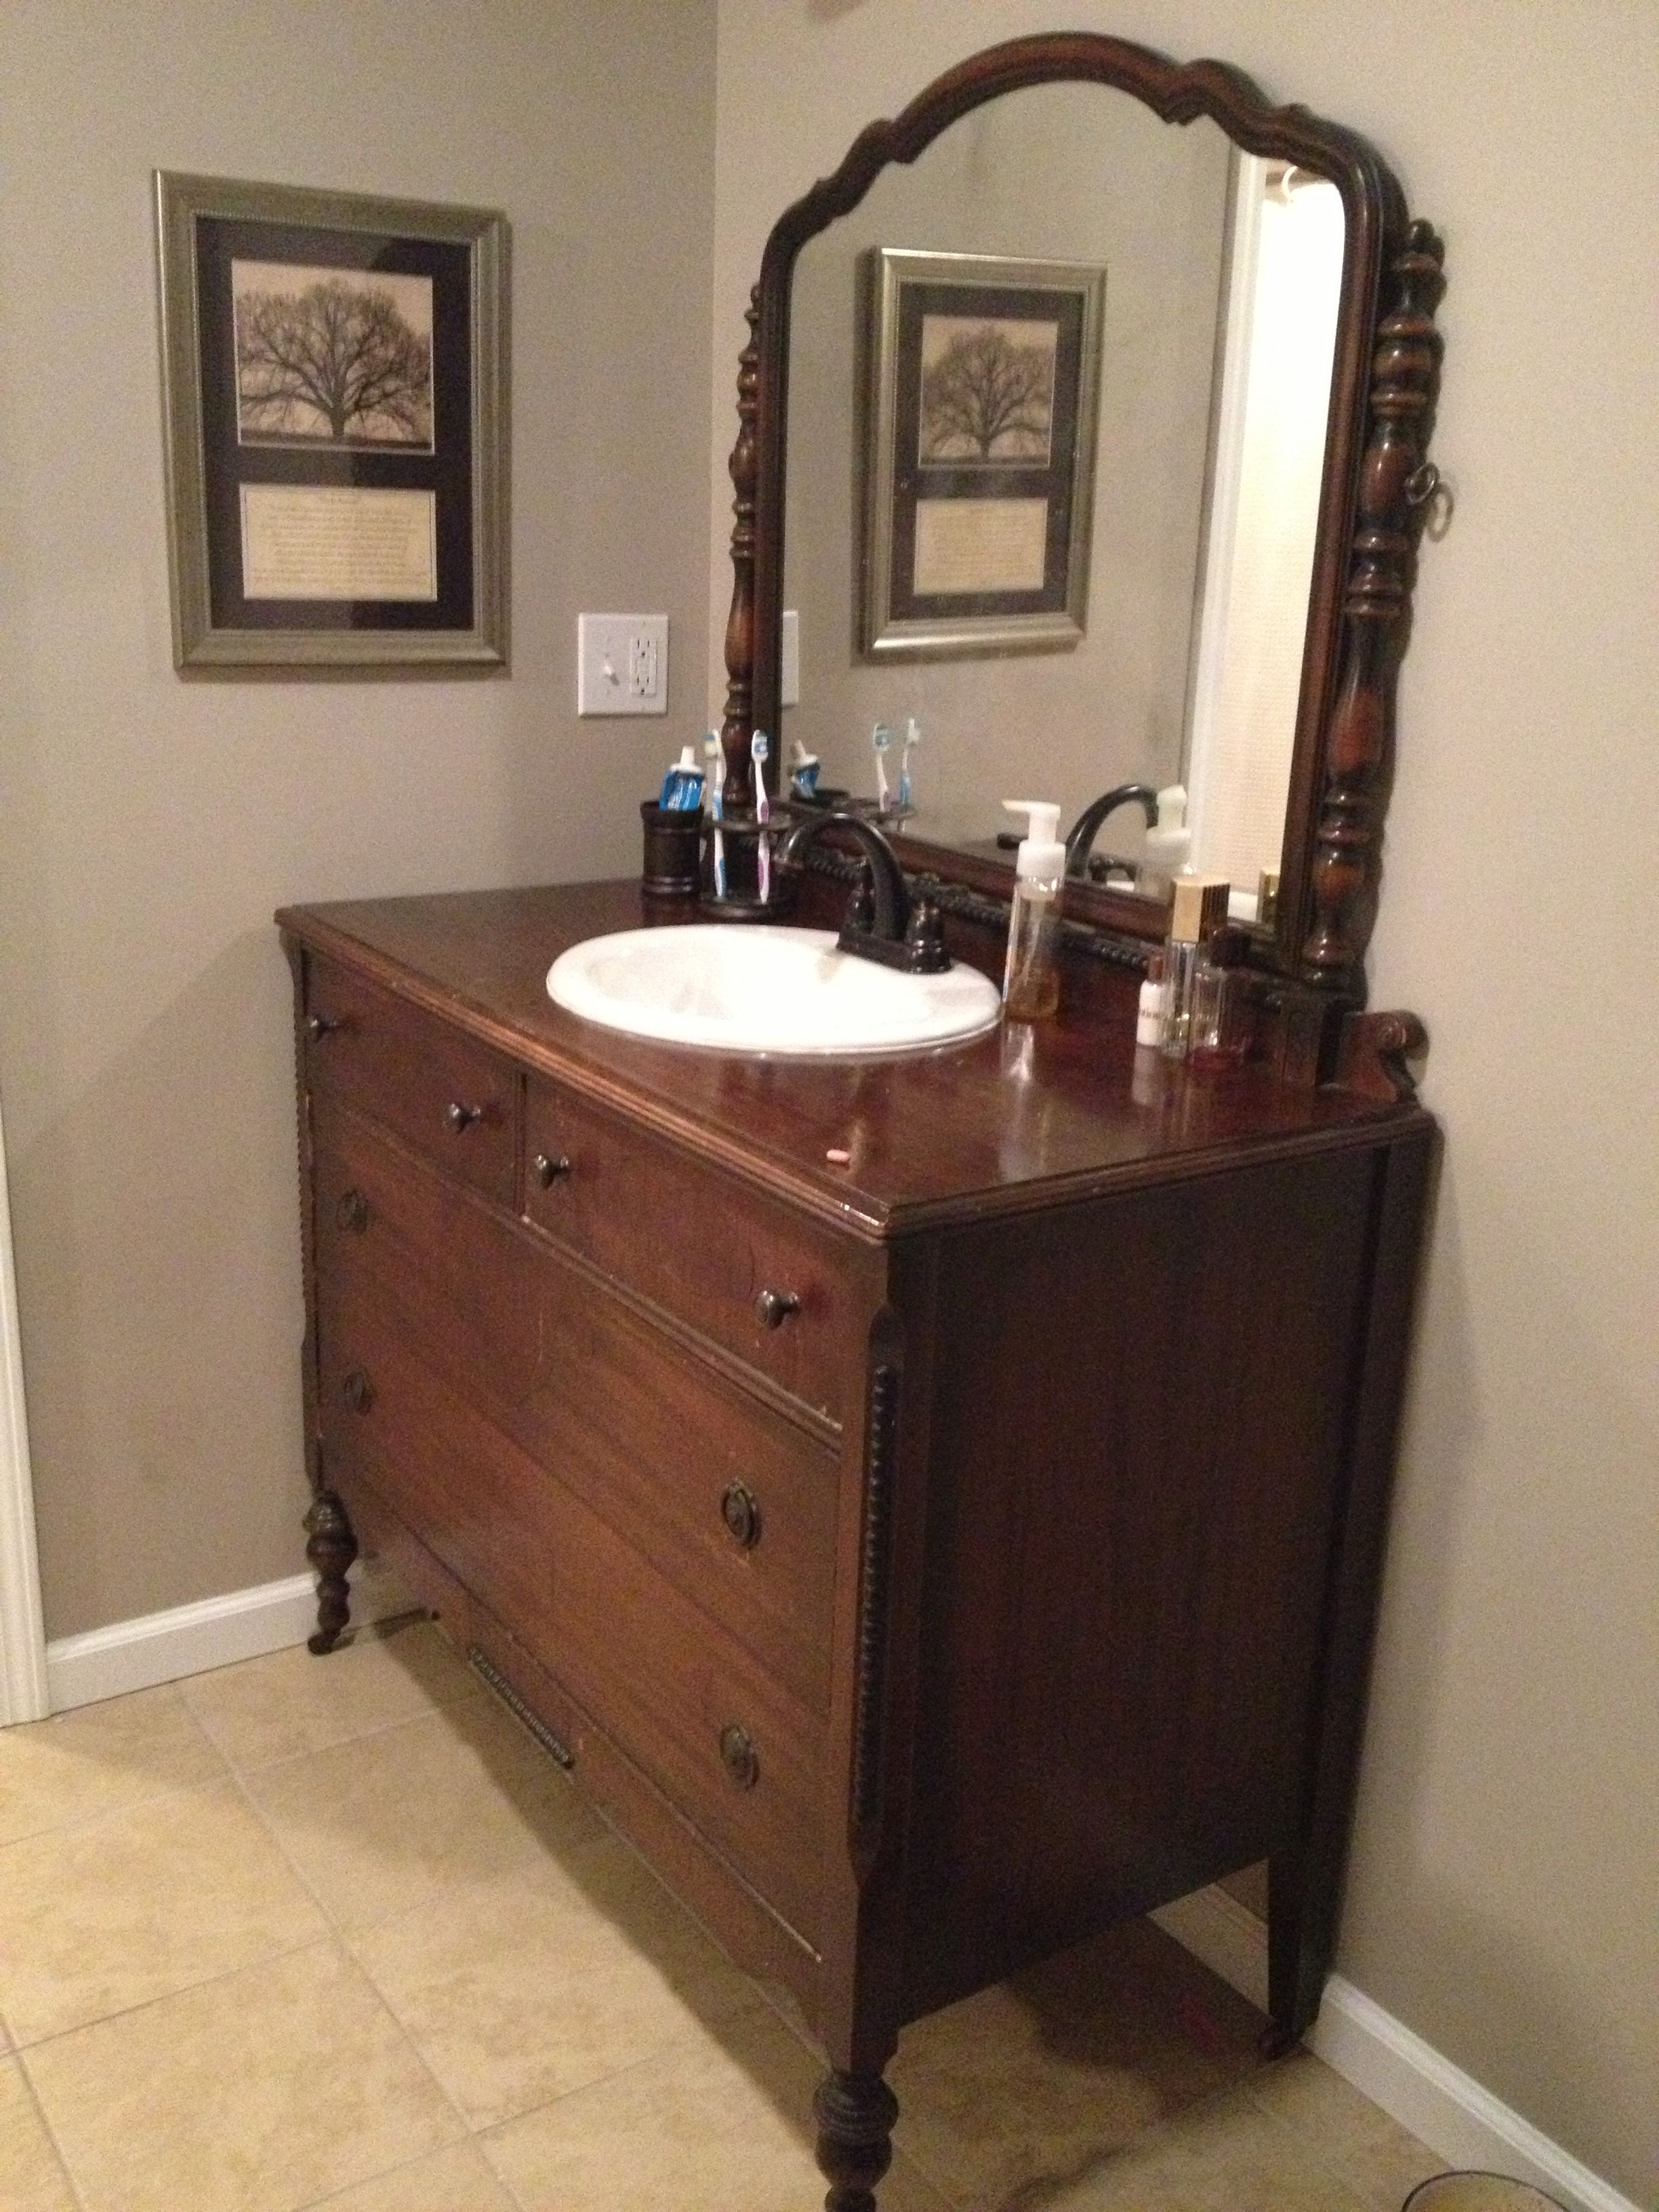 Turn A Dresser Into Bathroom Vanity Find Dressers At Habitat For - Bathroom remodeling pinellas county